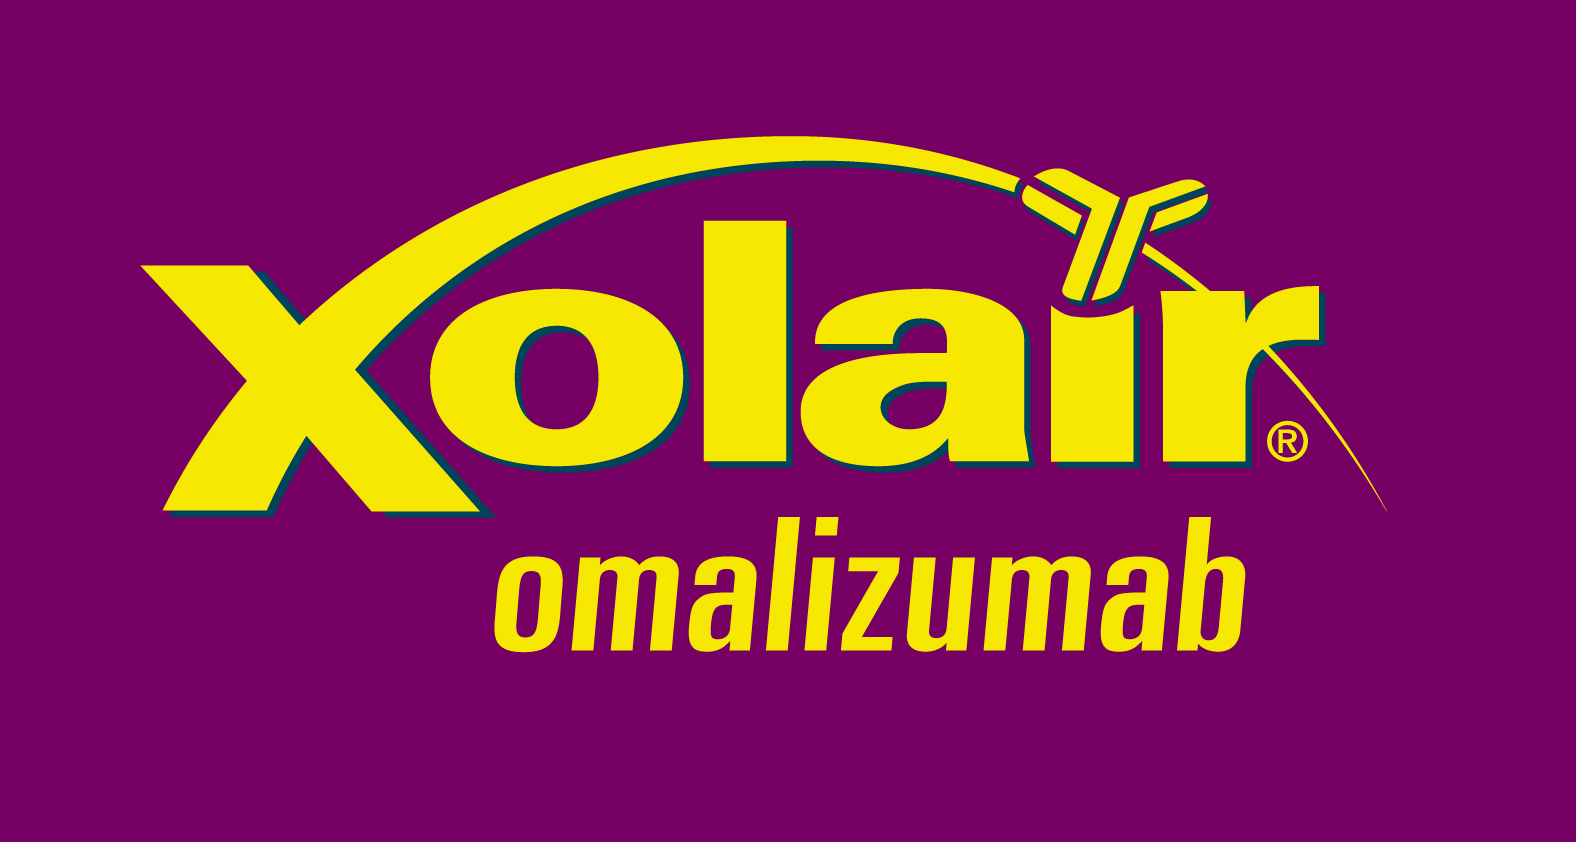 Xolair Label Updated with New Warnings